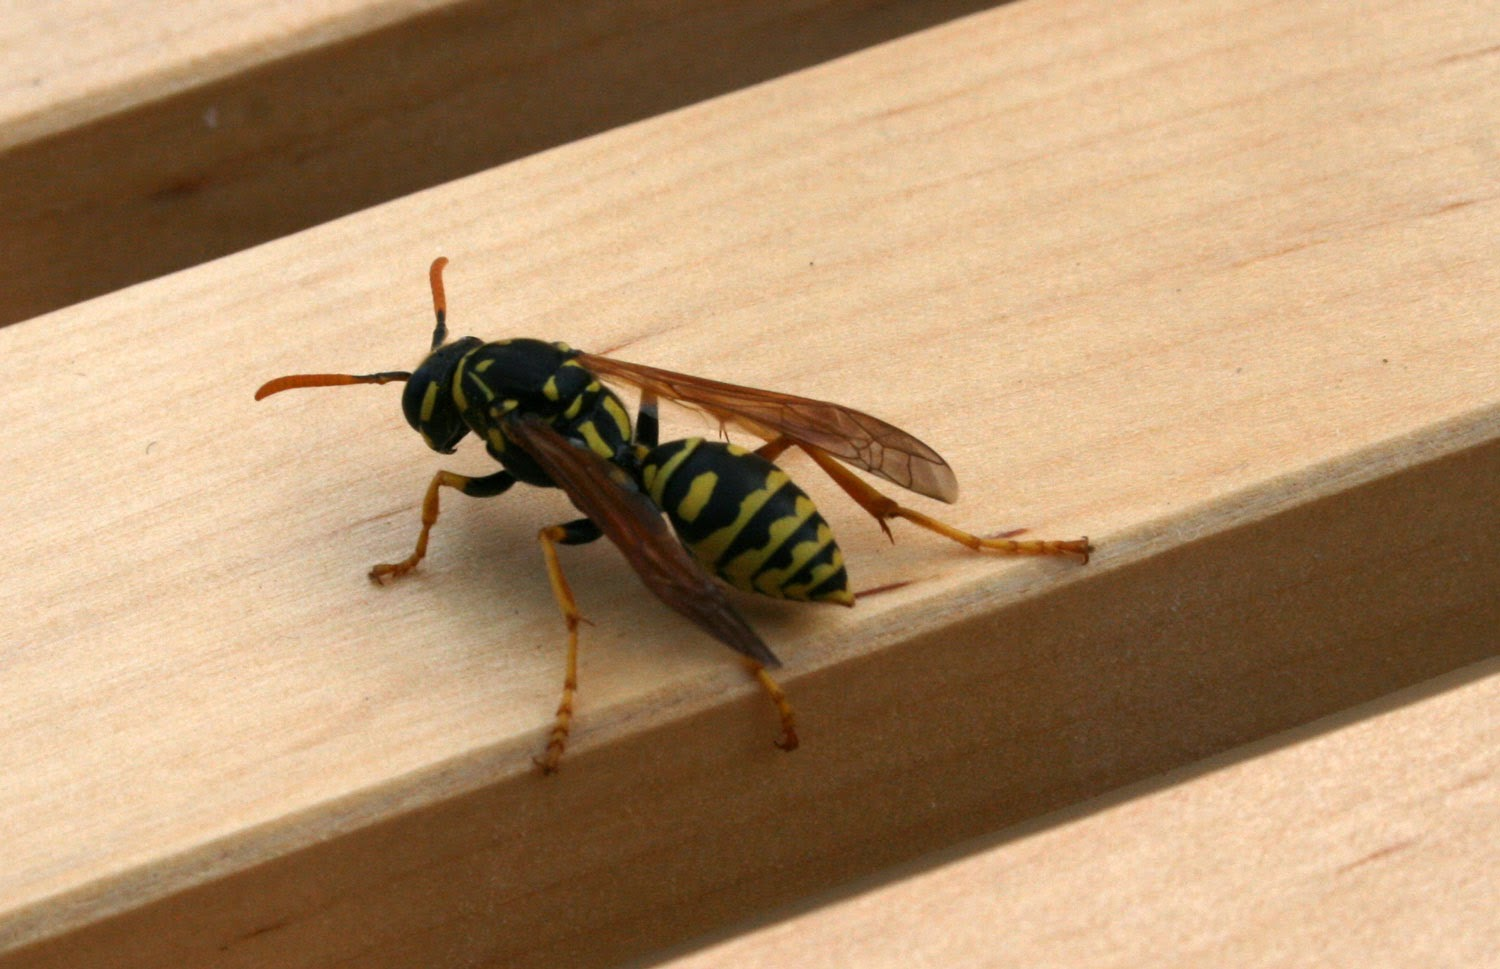 The wasp on the table